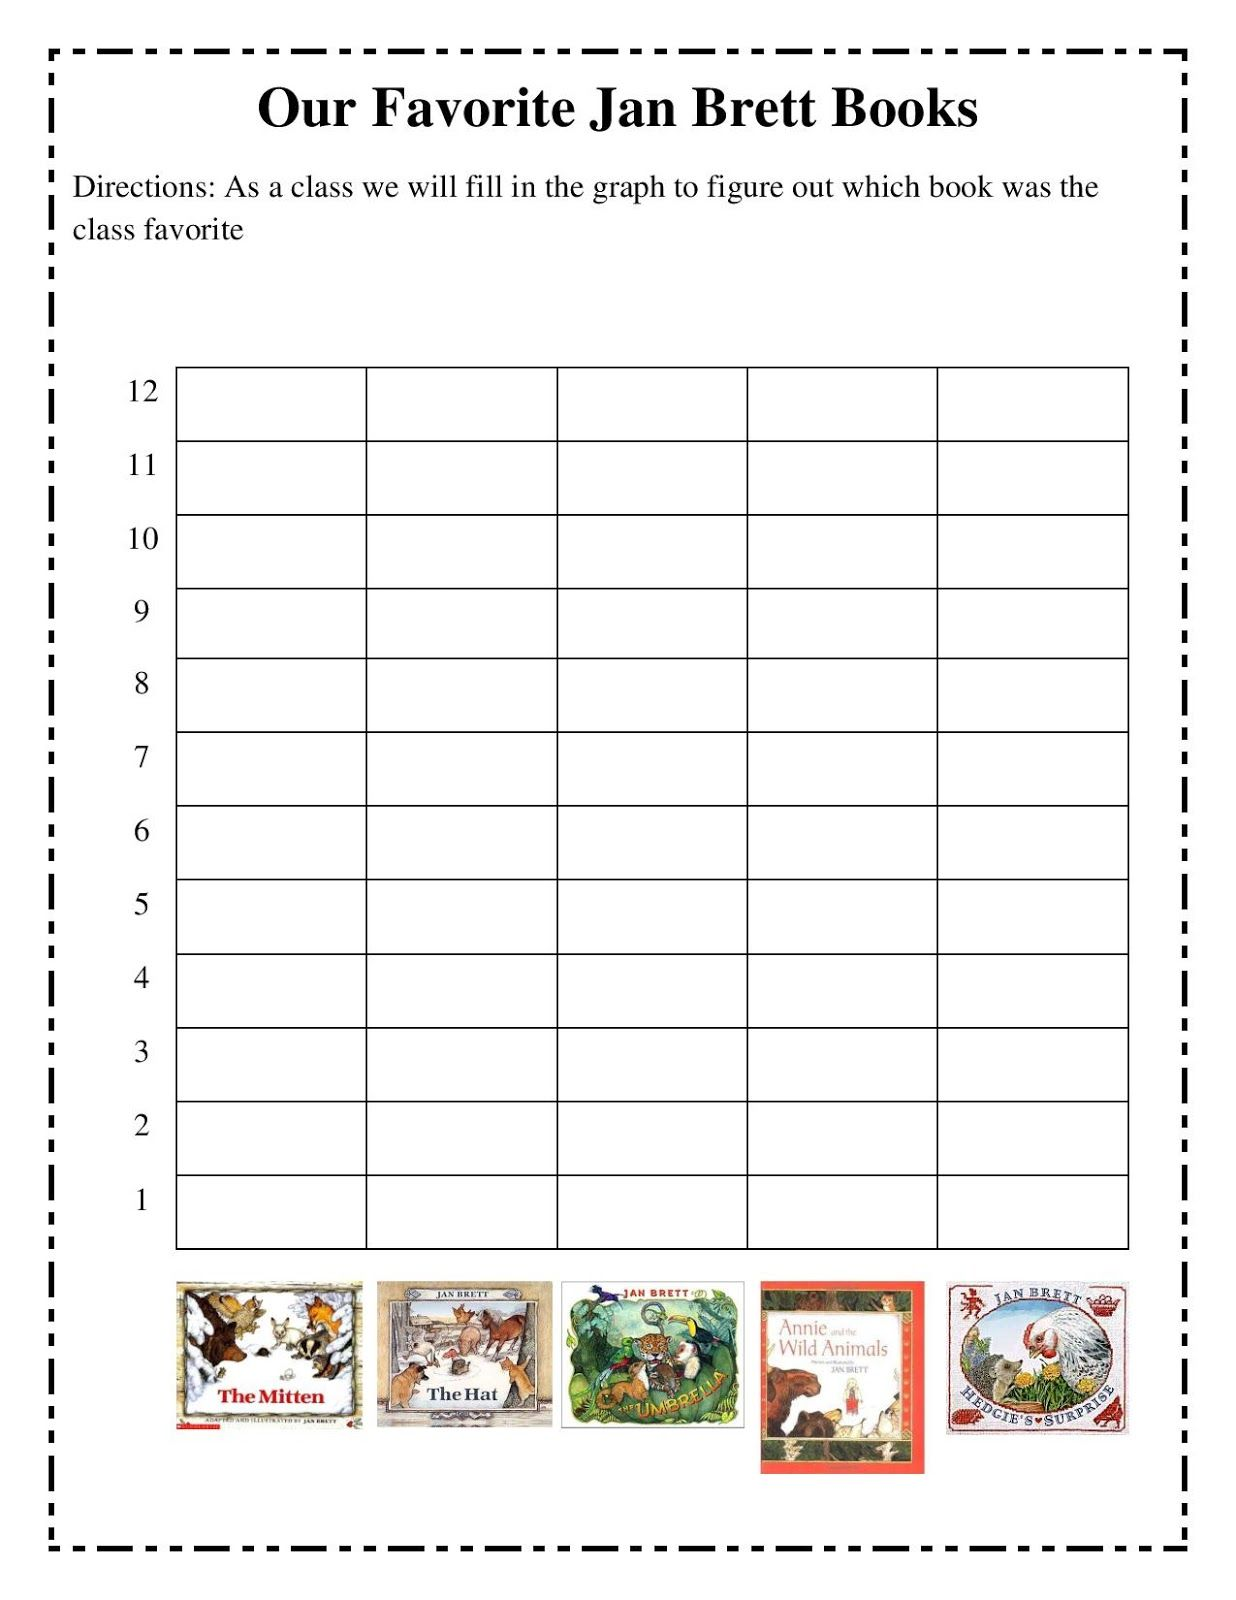 Jan Brett Author Study Bar Graph To Chart The Class' Favorite Books This  Page